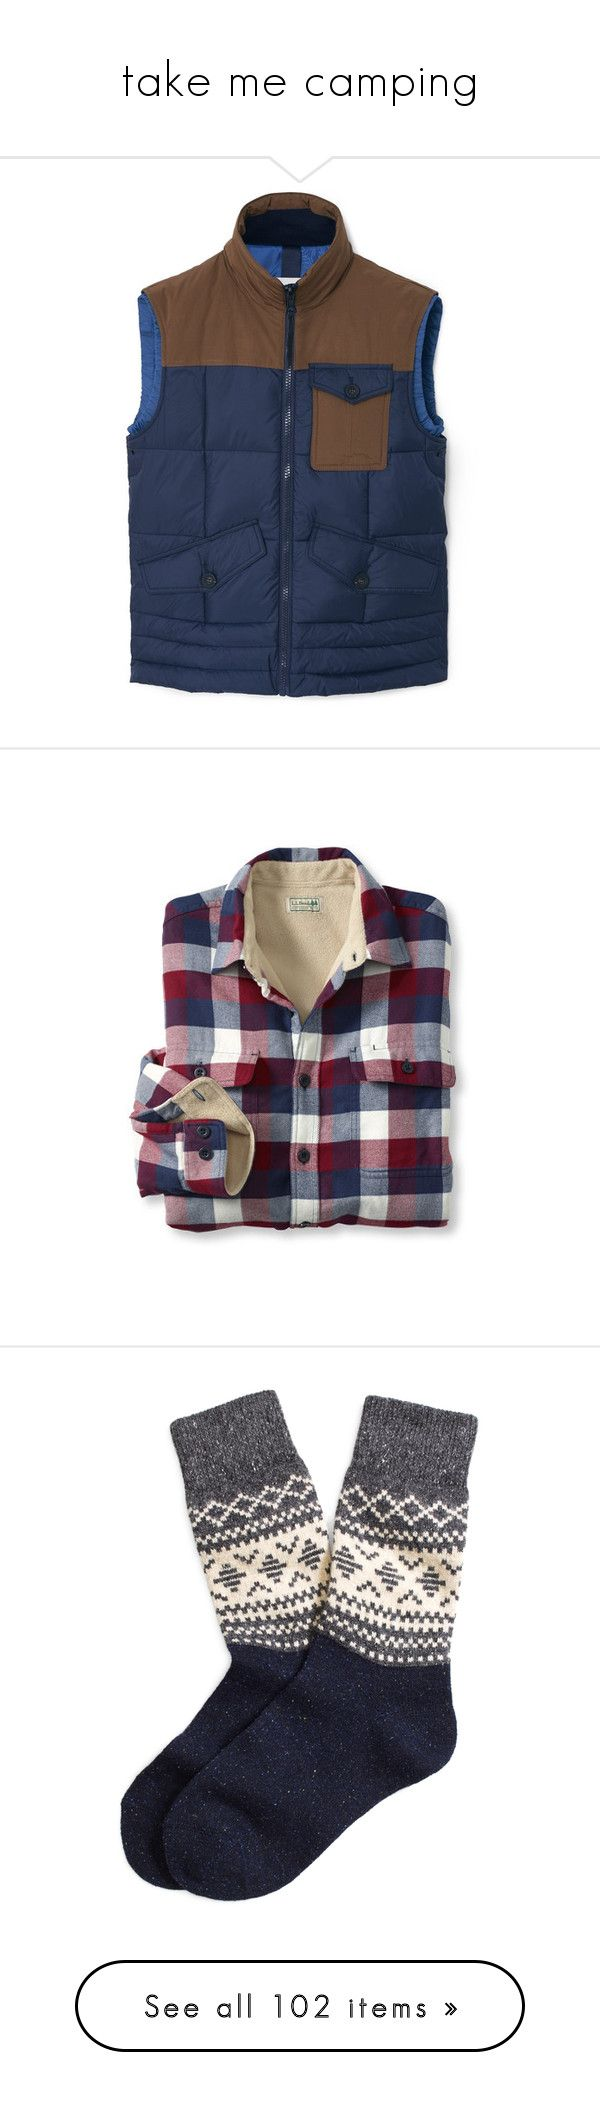 """""""take me camping"""" by croptopkitten ❤ liked on Polyvore featuring men's fashion, men's clothing, men's outerwear, men's vests, mens zipper vest, mens quilted vest, mens zip vest, men's shirts, men's casual shirts and tops"""